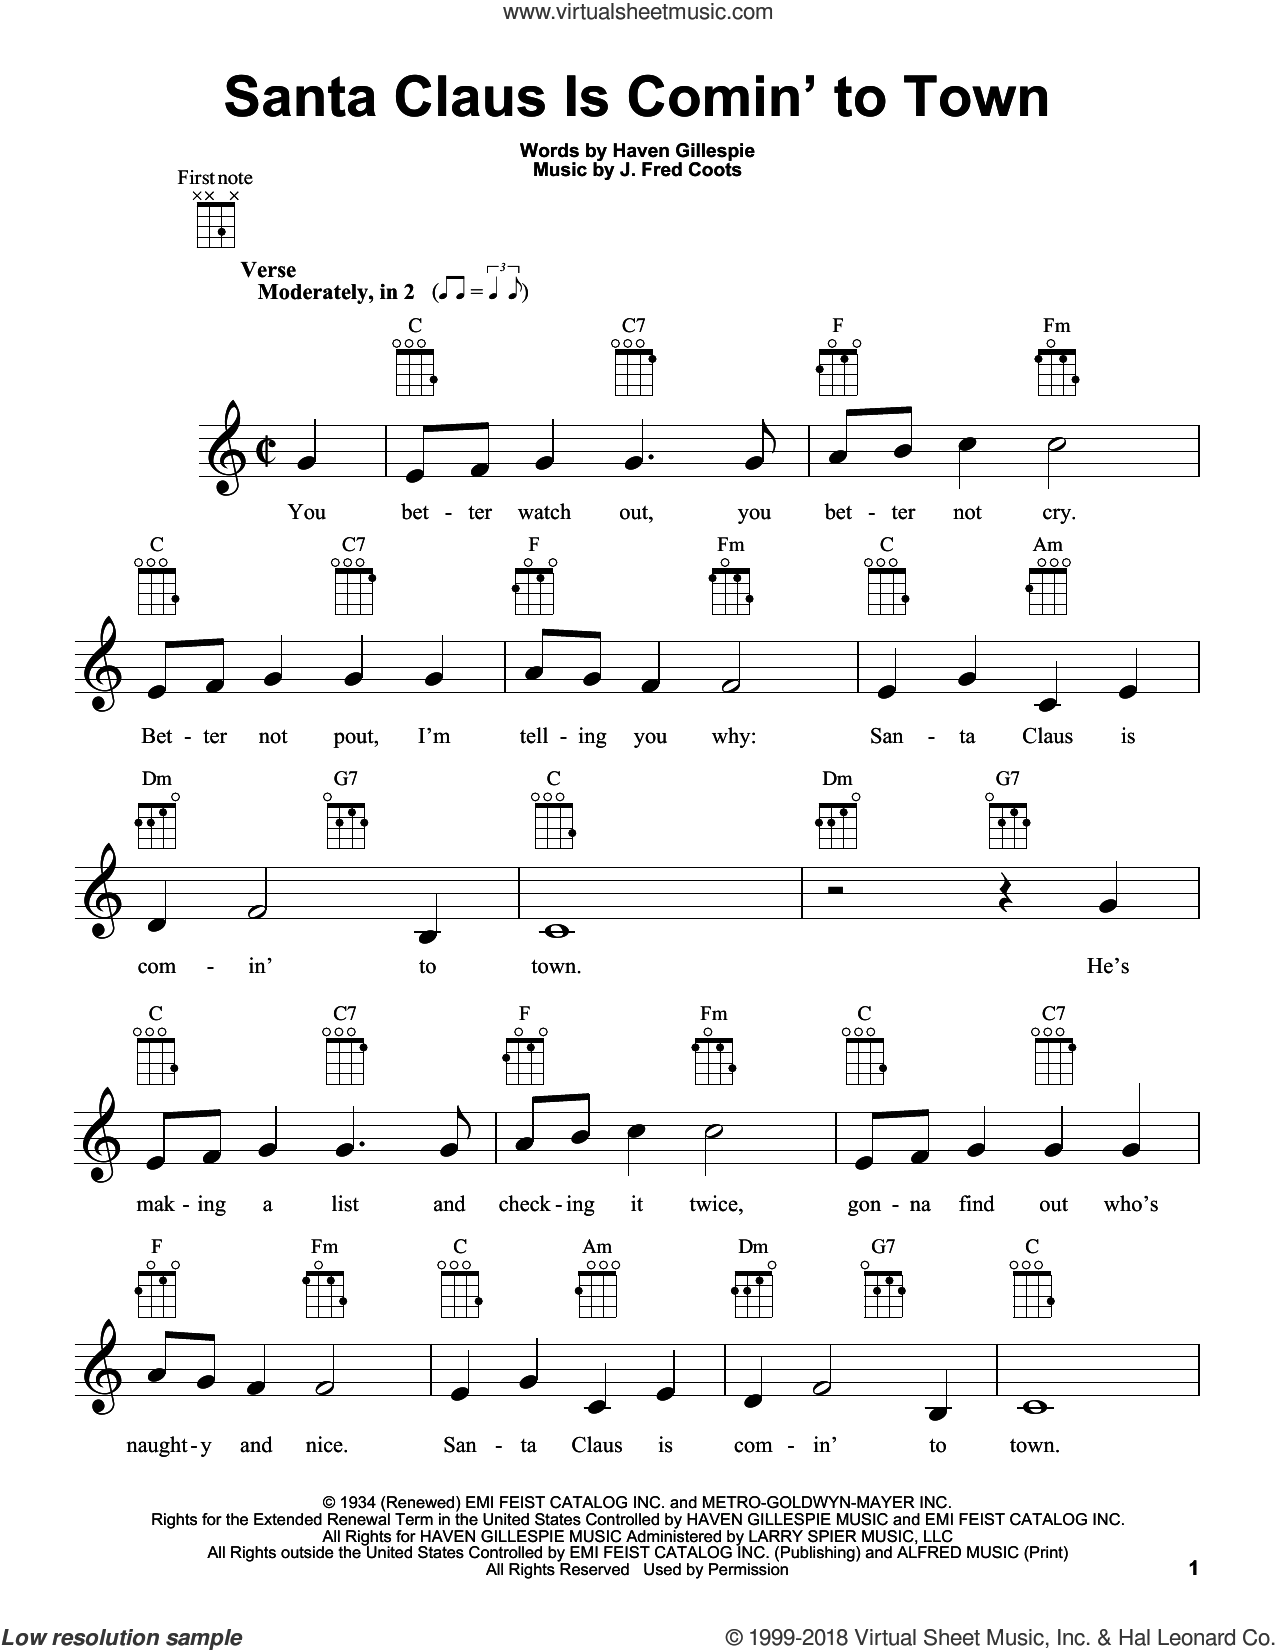 Santa Claus Is Comin' To Town sheet music for ukulele by J. Fred Coots and Haven Gillespie, intermediate skill level